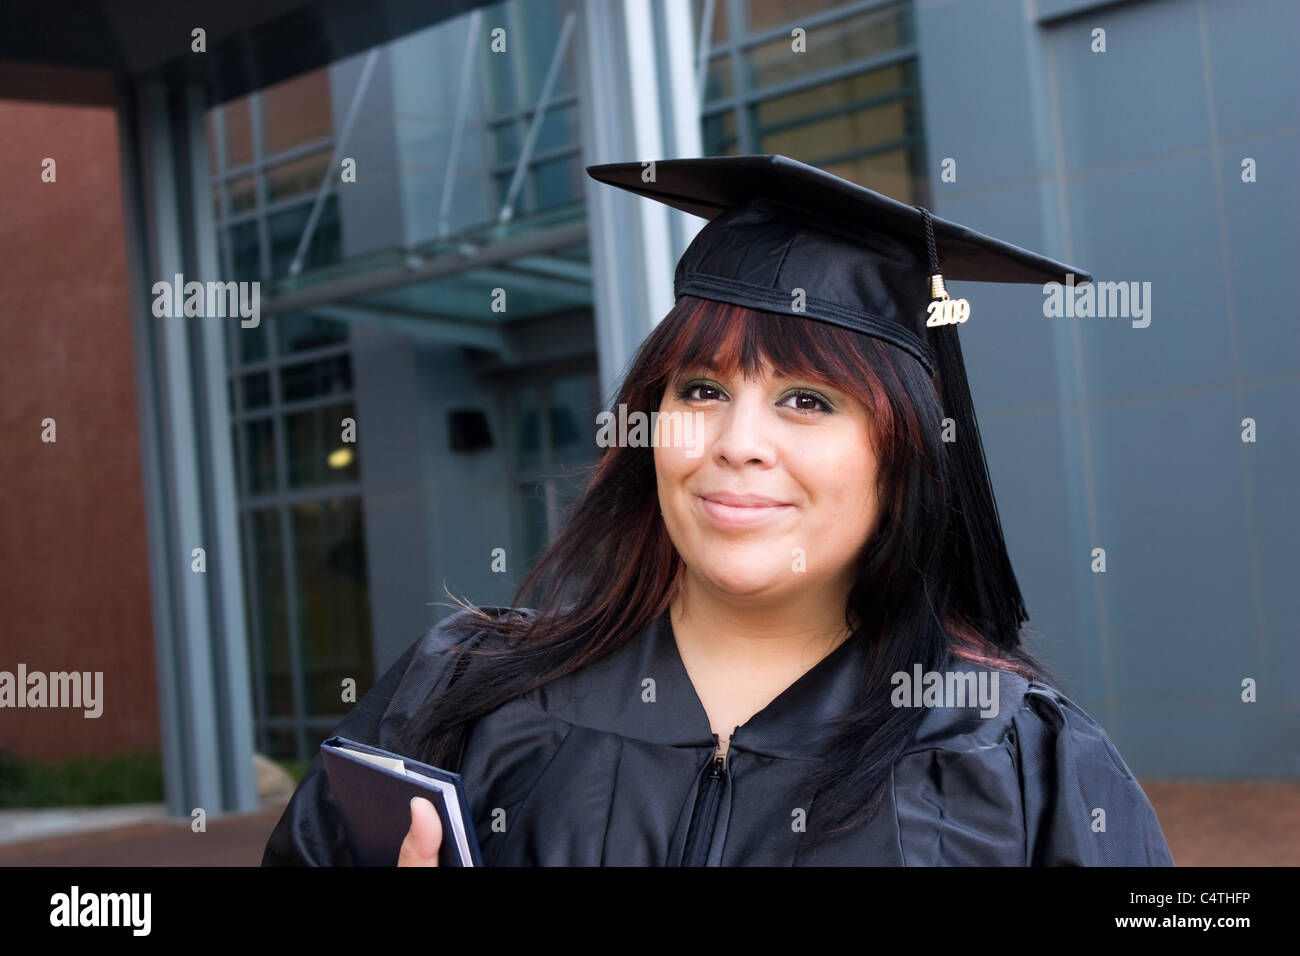 A recent graduate posing in her cap and gown and holding her fresh diploma or degree. Stock Photo